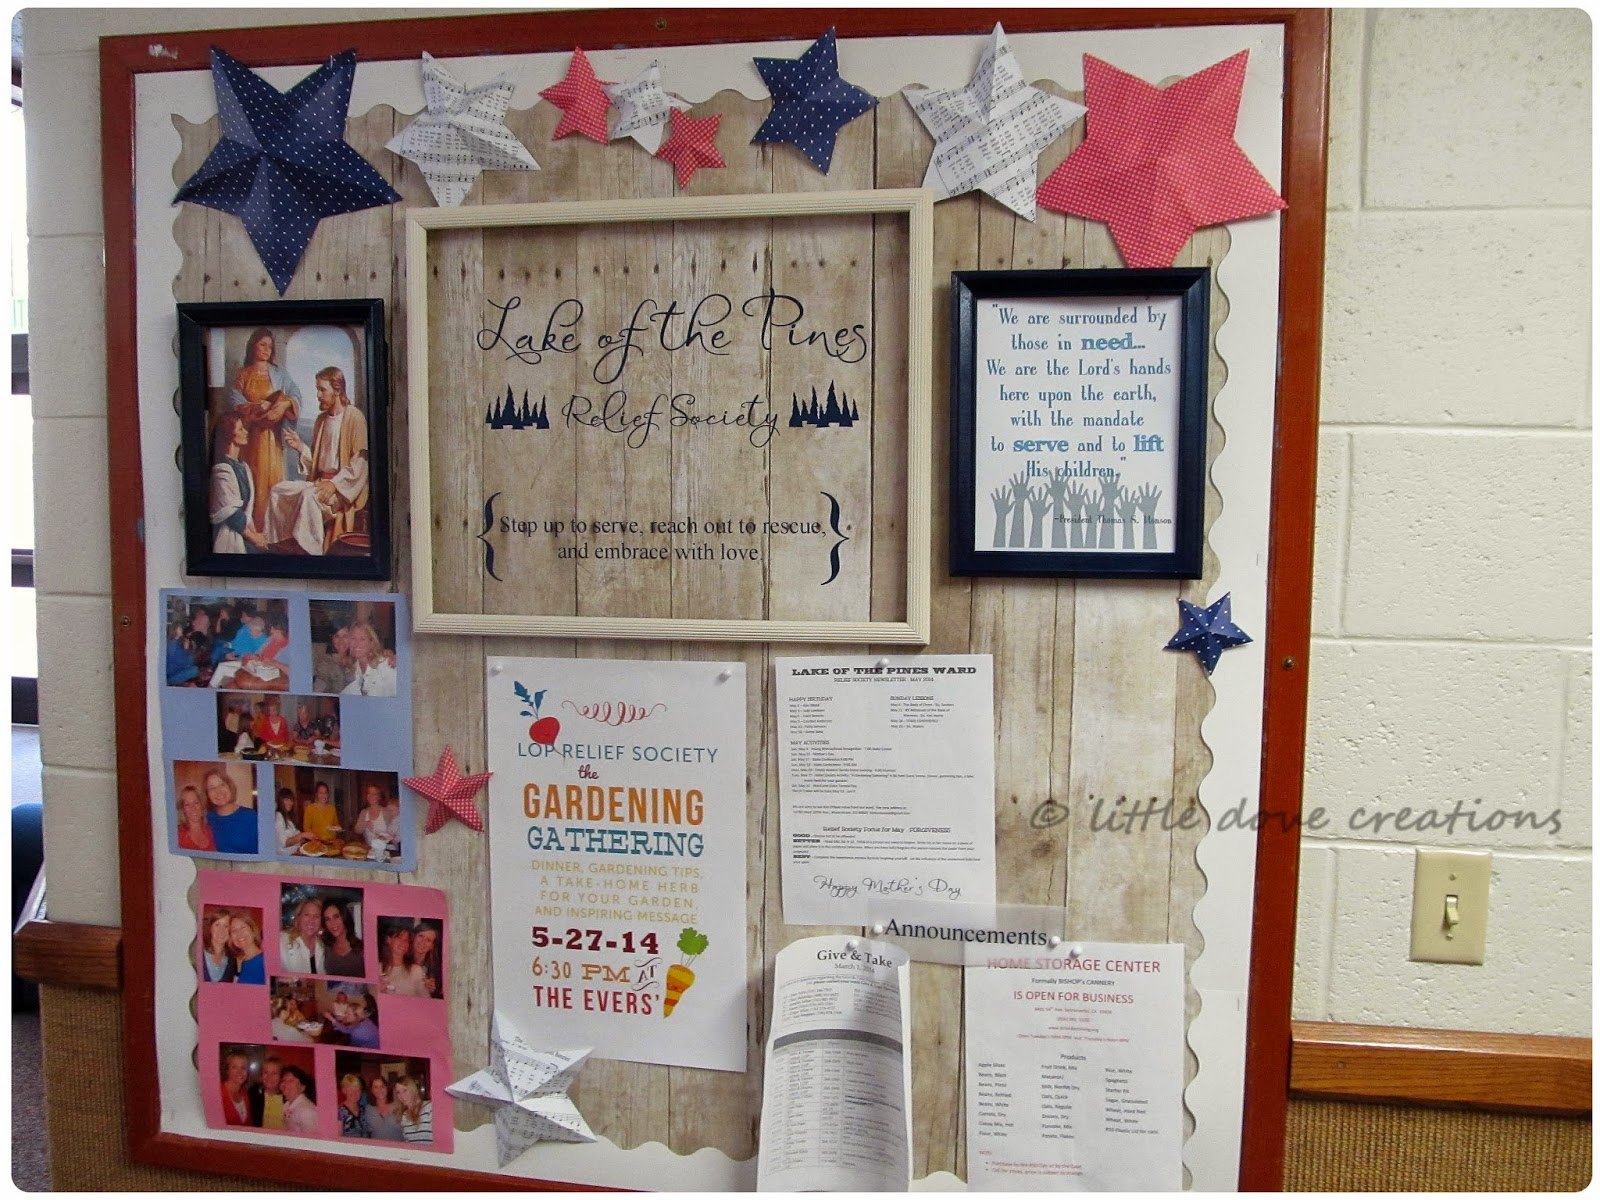 ... Dove Creations: summertime relief society bulletin board & june